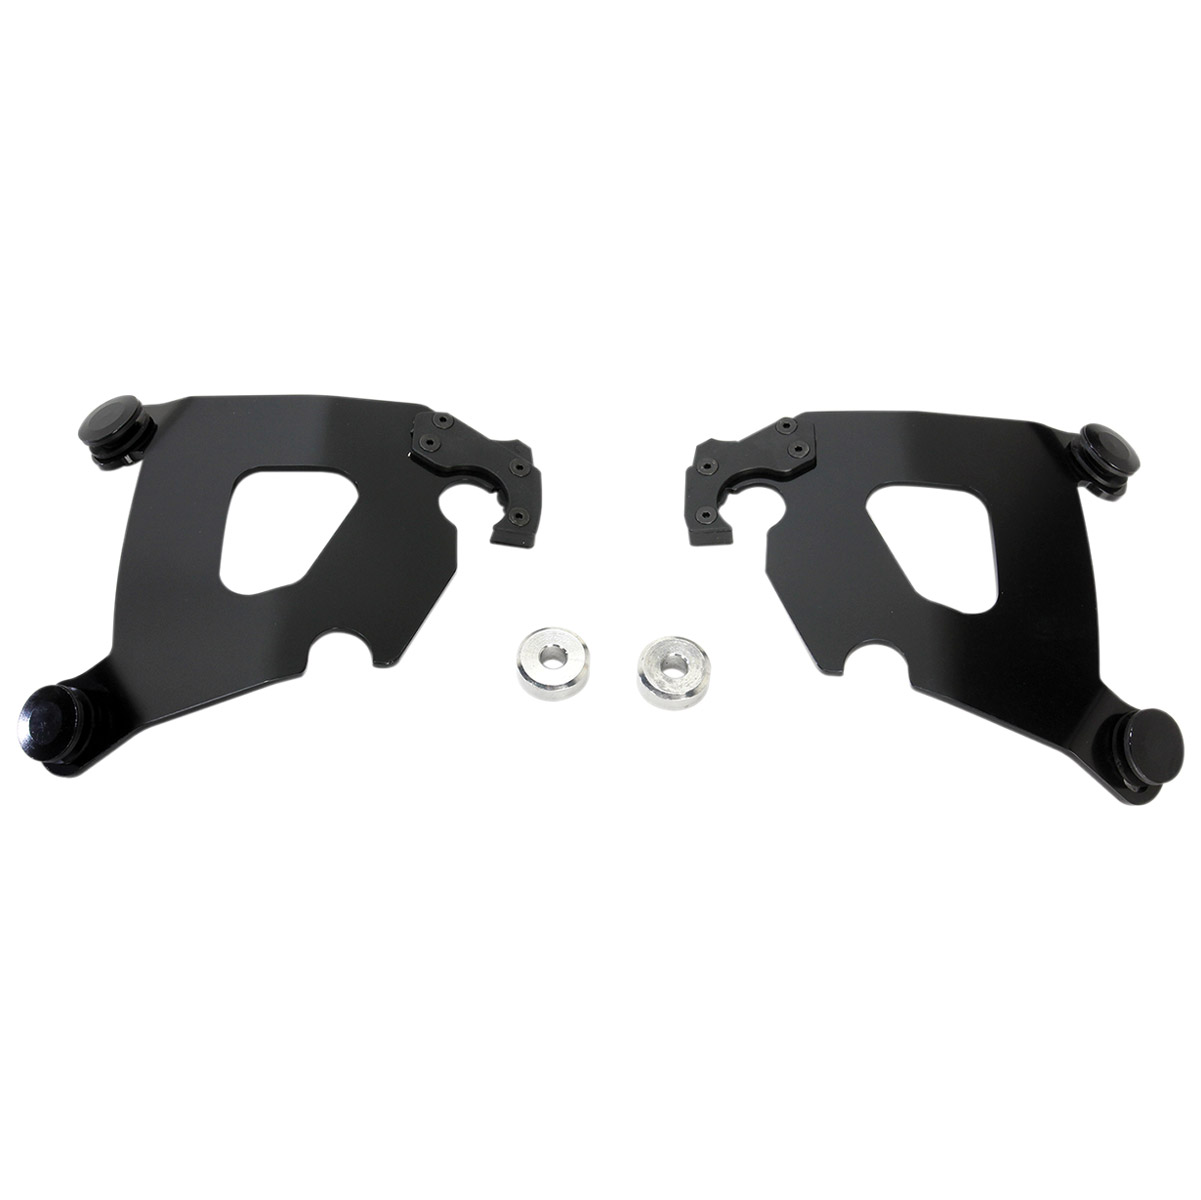 Memphis Shades Cafe Fairing Black Mounting Plates Only